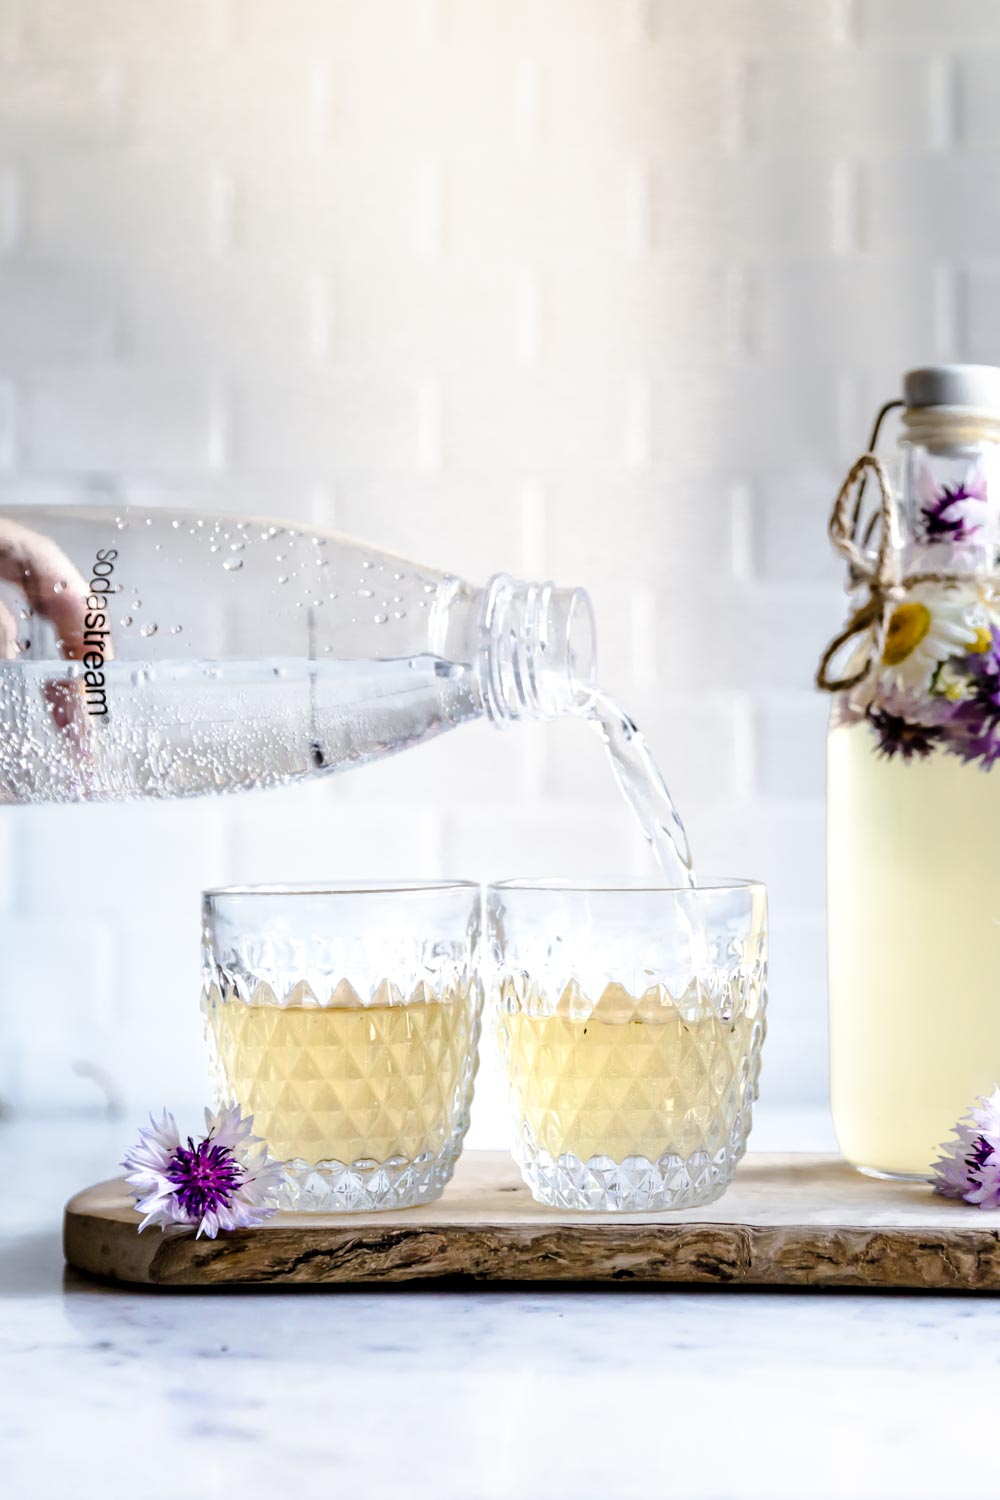 sodastream bottle pouring water in a small glass with tea next to another small glass with flowers and a tall bottle with tea and flowers on a wooden cutting board